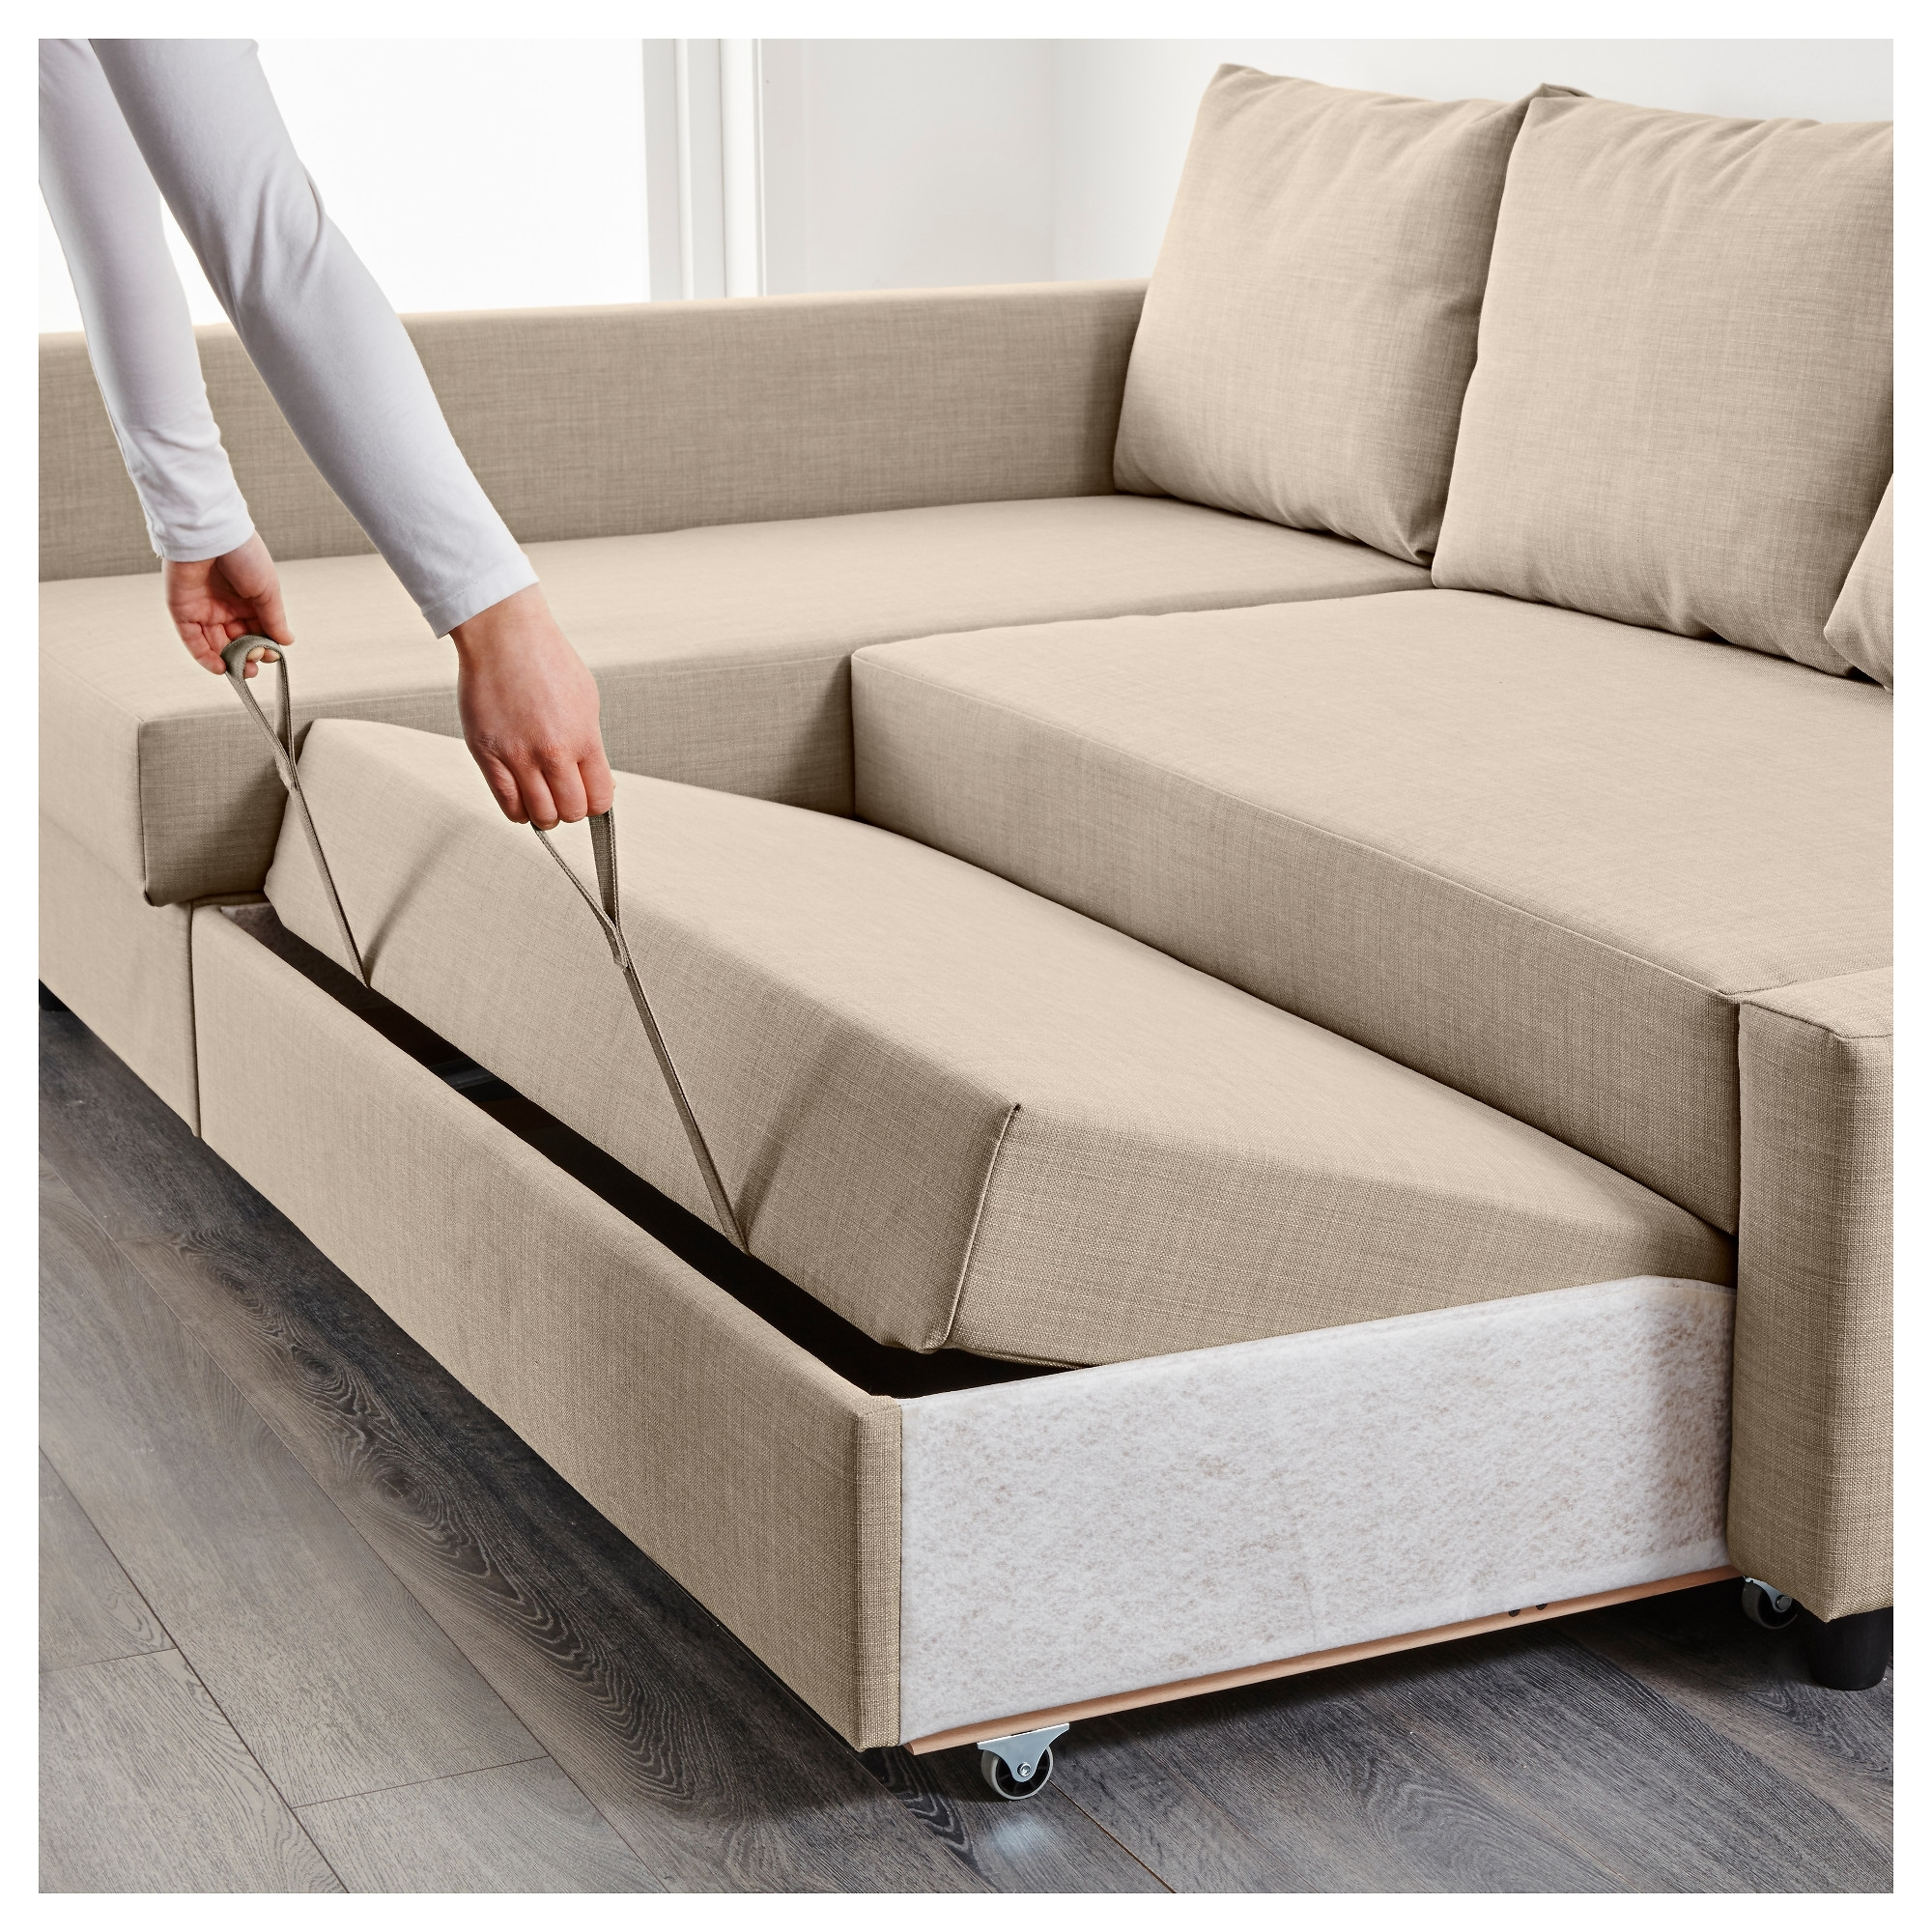 Friheten Corner Sofa-Bed With Storage Skiftebo Beige - Ikea inside Ikea Corner Sofas With Storage (Image 5 of 10)